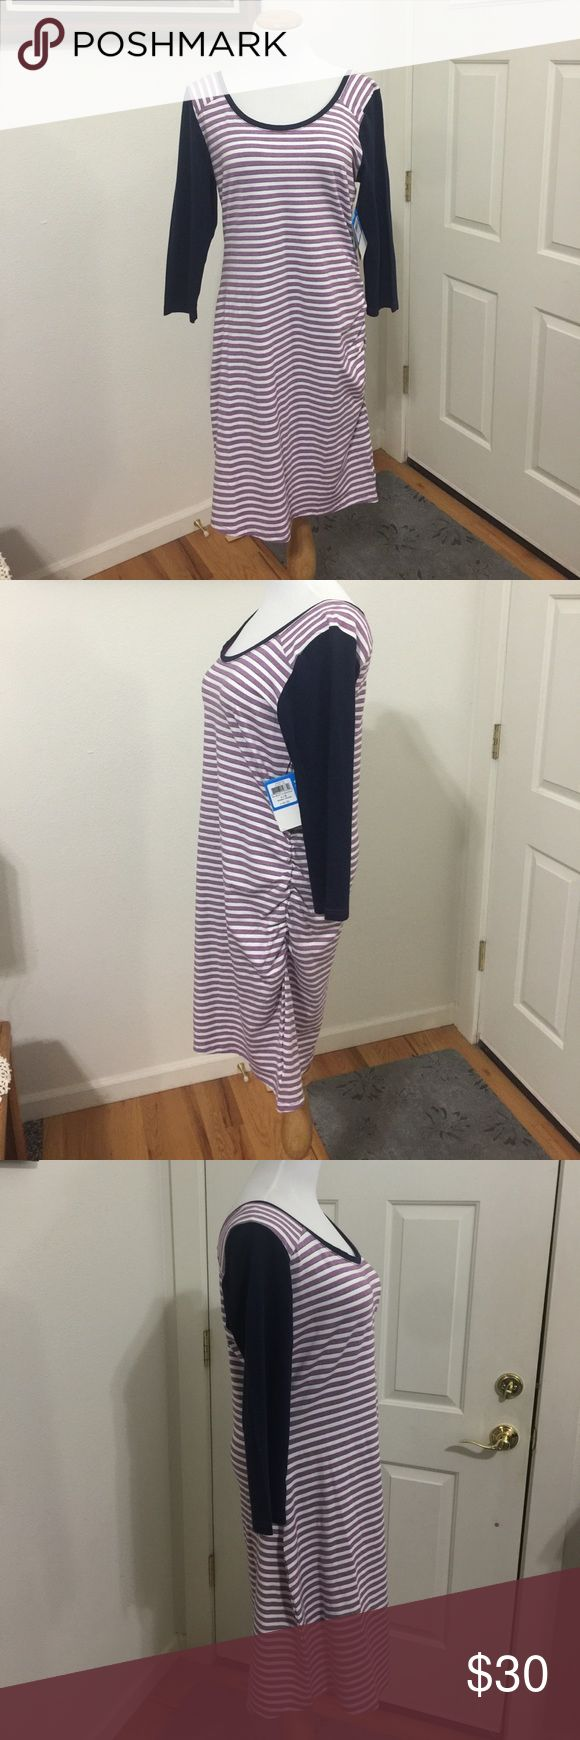 "Columbia Sportswear Company Dress Very comfortable dress, one side has a gather down the side. 38"" Long, Blue purple and white. Columbia Dresses Midi"